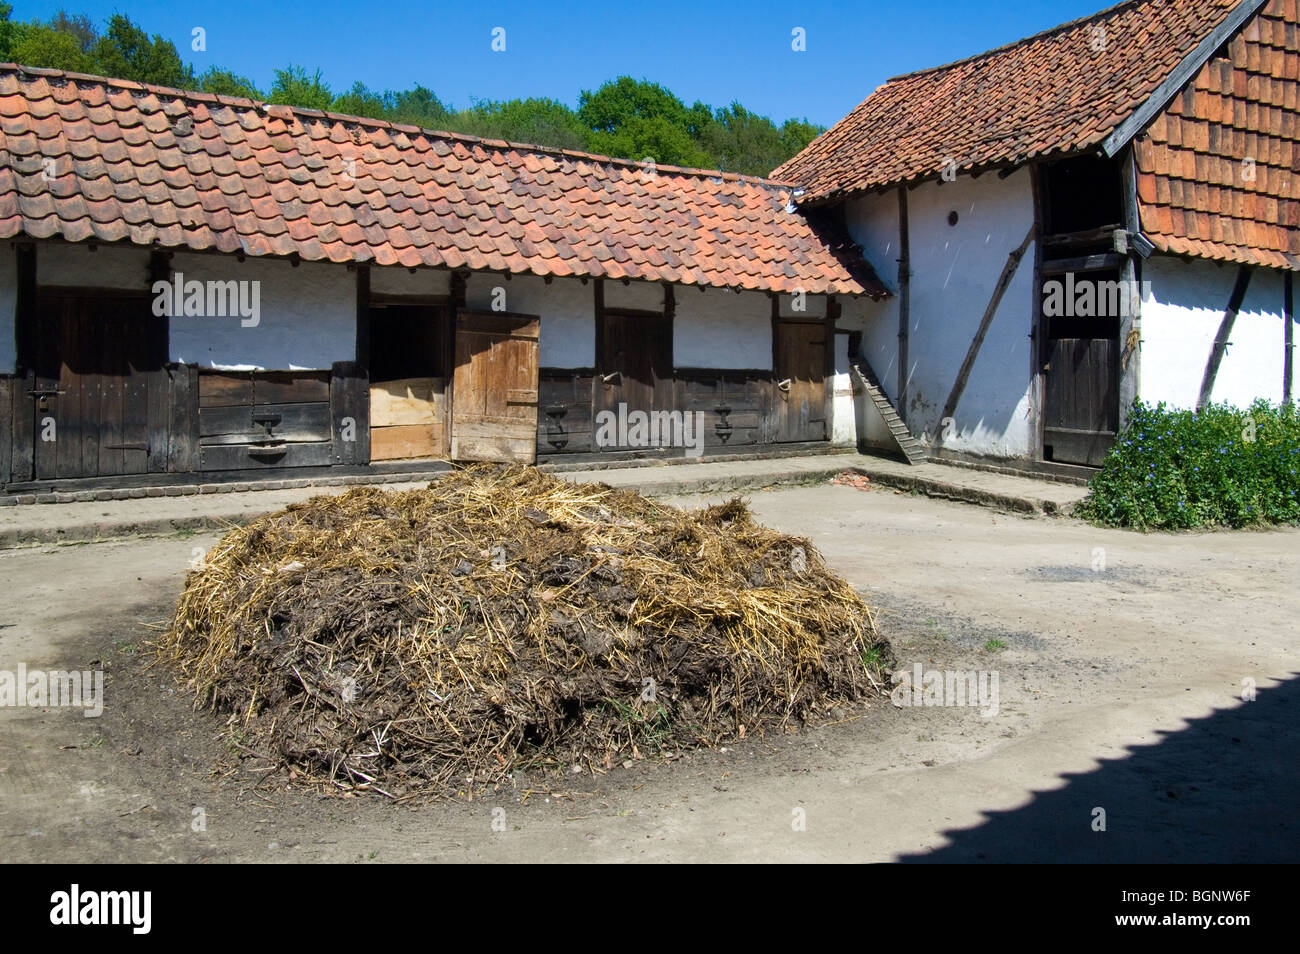 Dunghill / dungheap with manure at the inner courtyard of traditional farm in the open air museum Bokrijk, Belgium Stock Photo